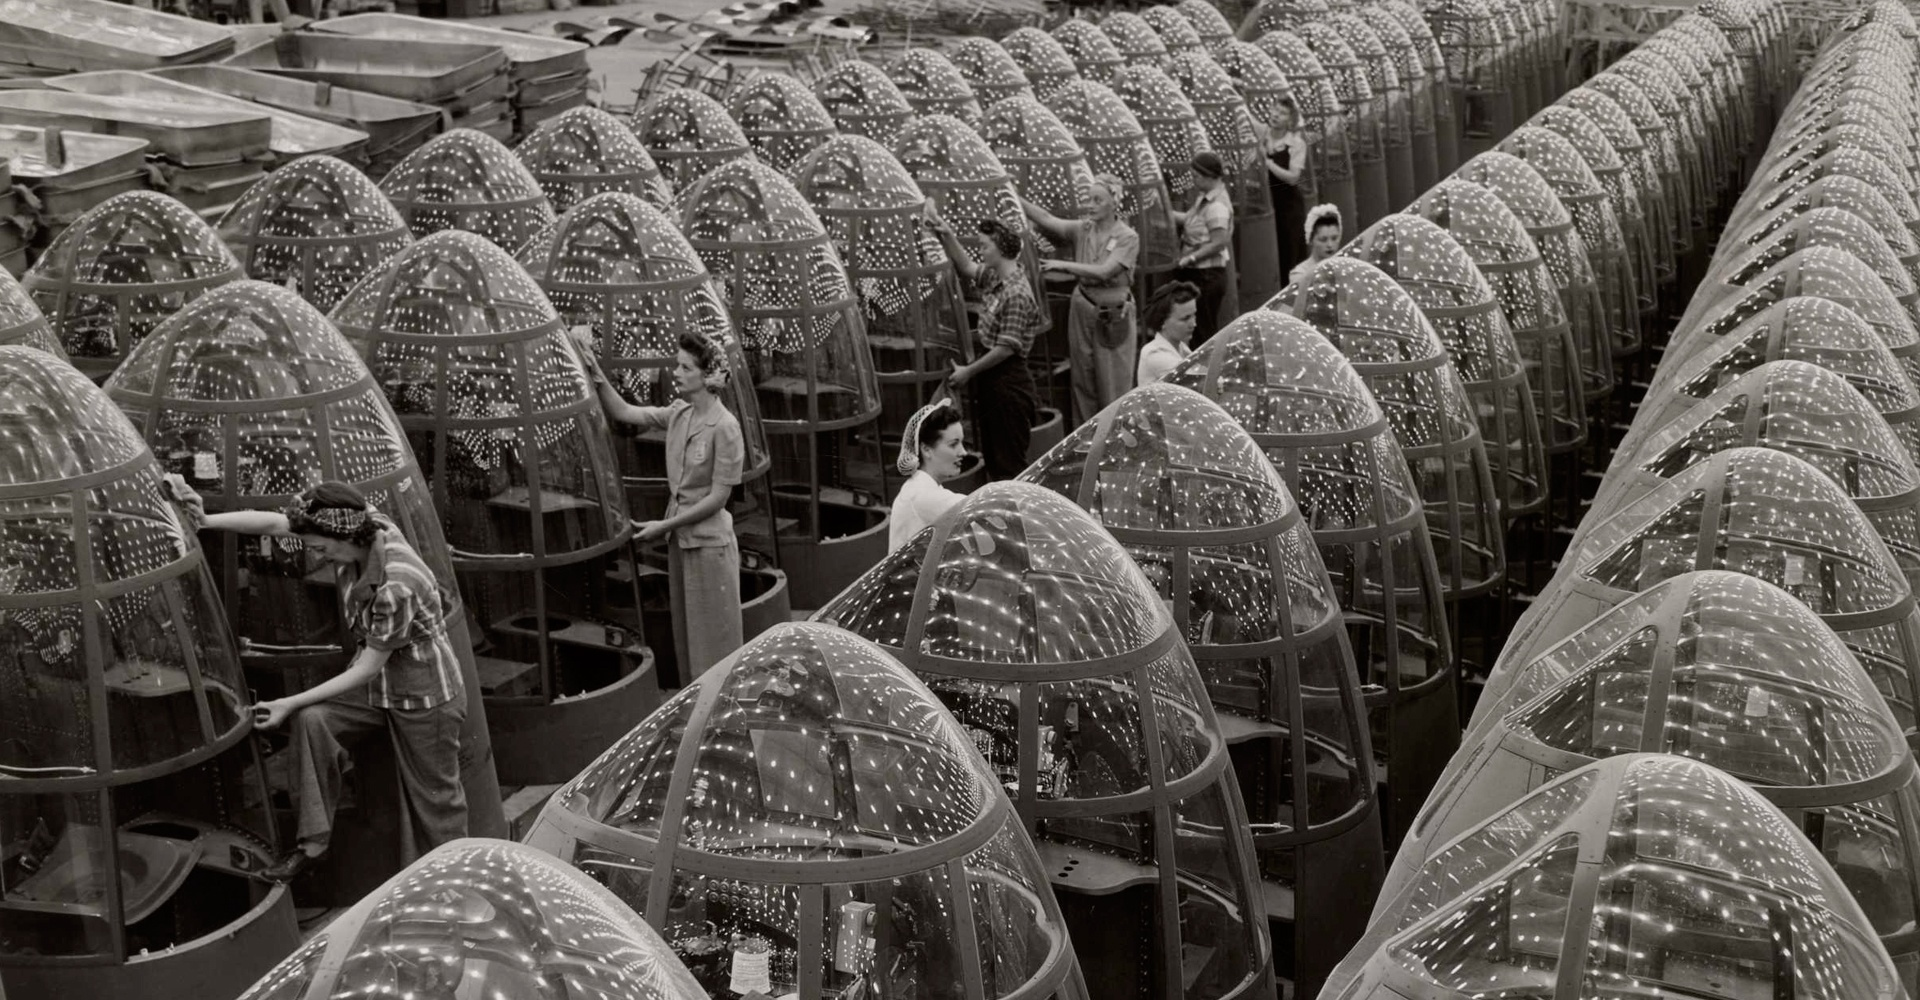 Women aircraft workers finishing transparent bomber noses for fighter and reconnaissance planes at Douglas Aircraft Co. Plant in Long Beach, California 1942